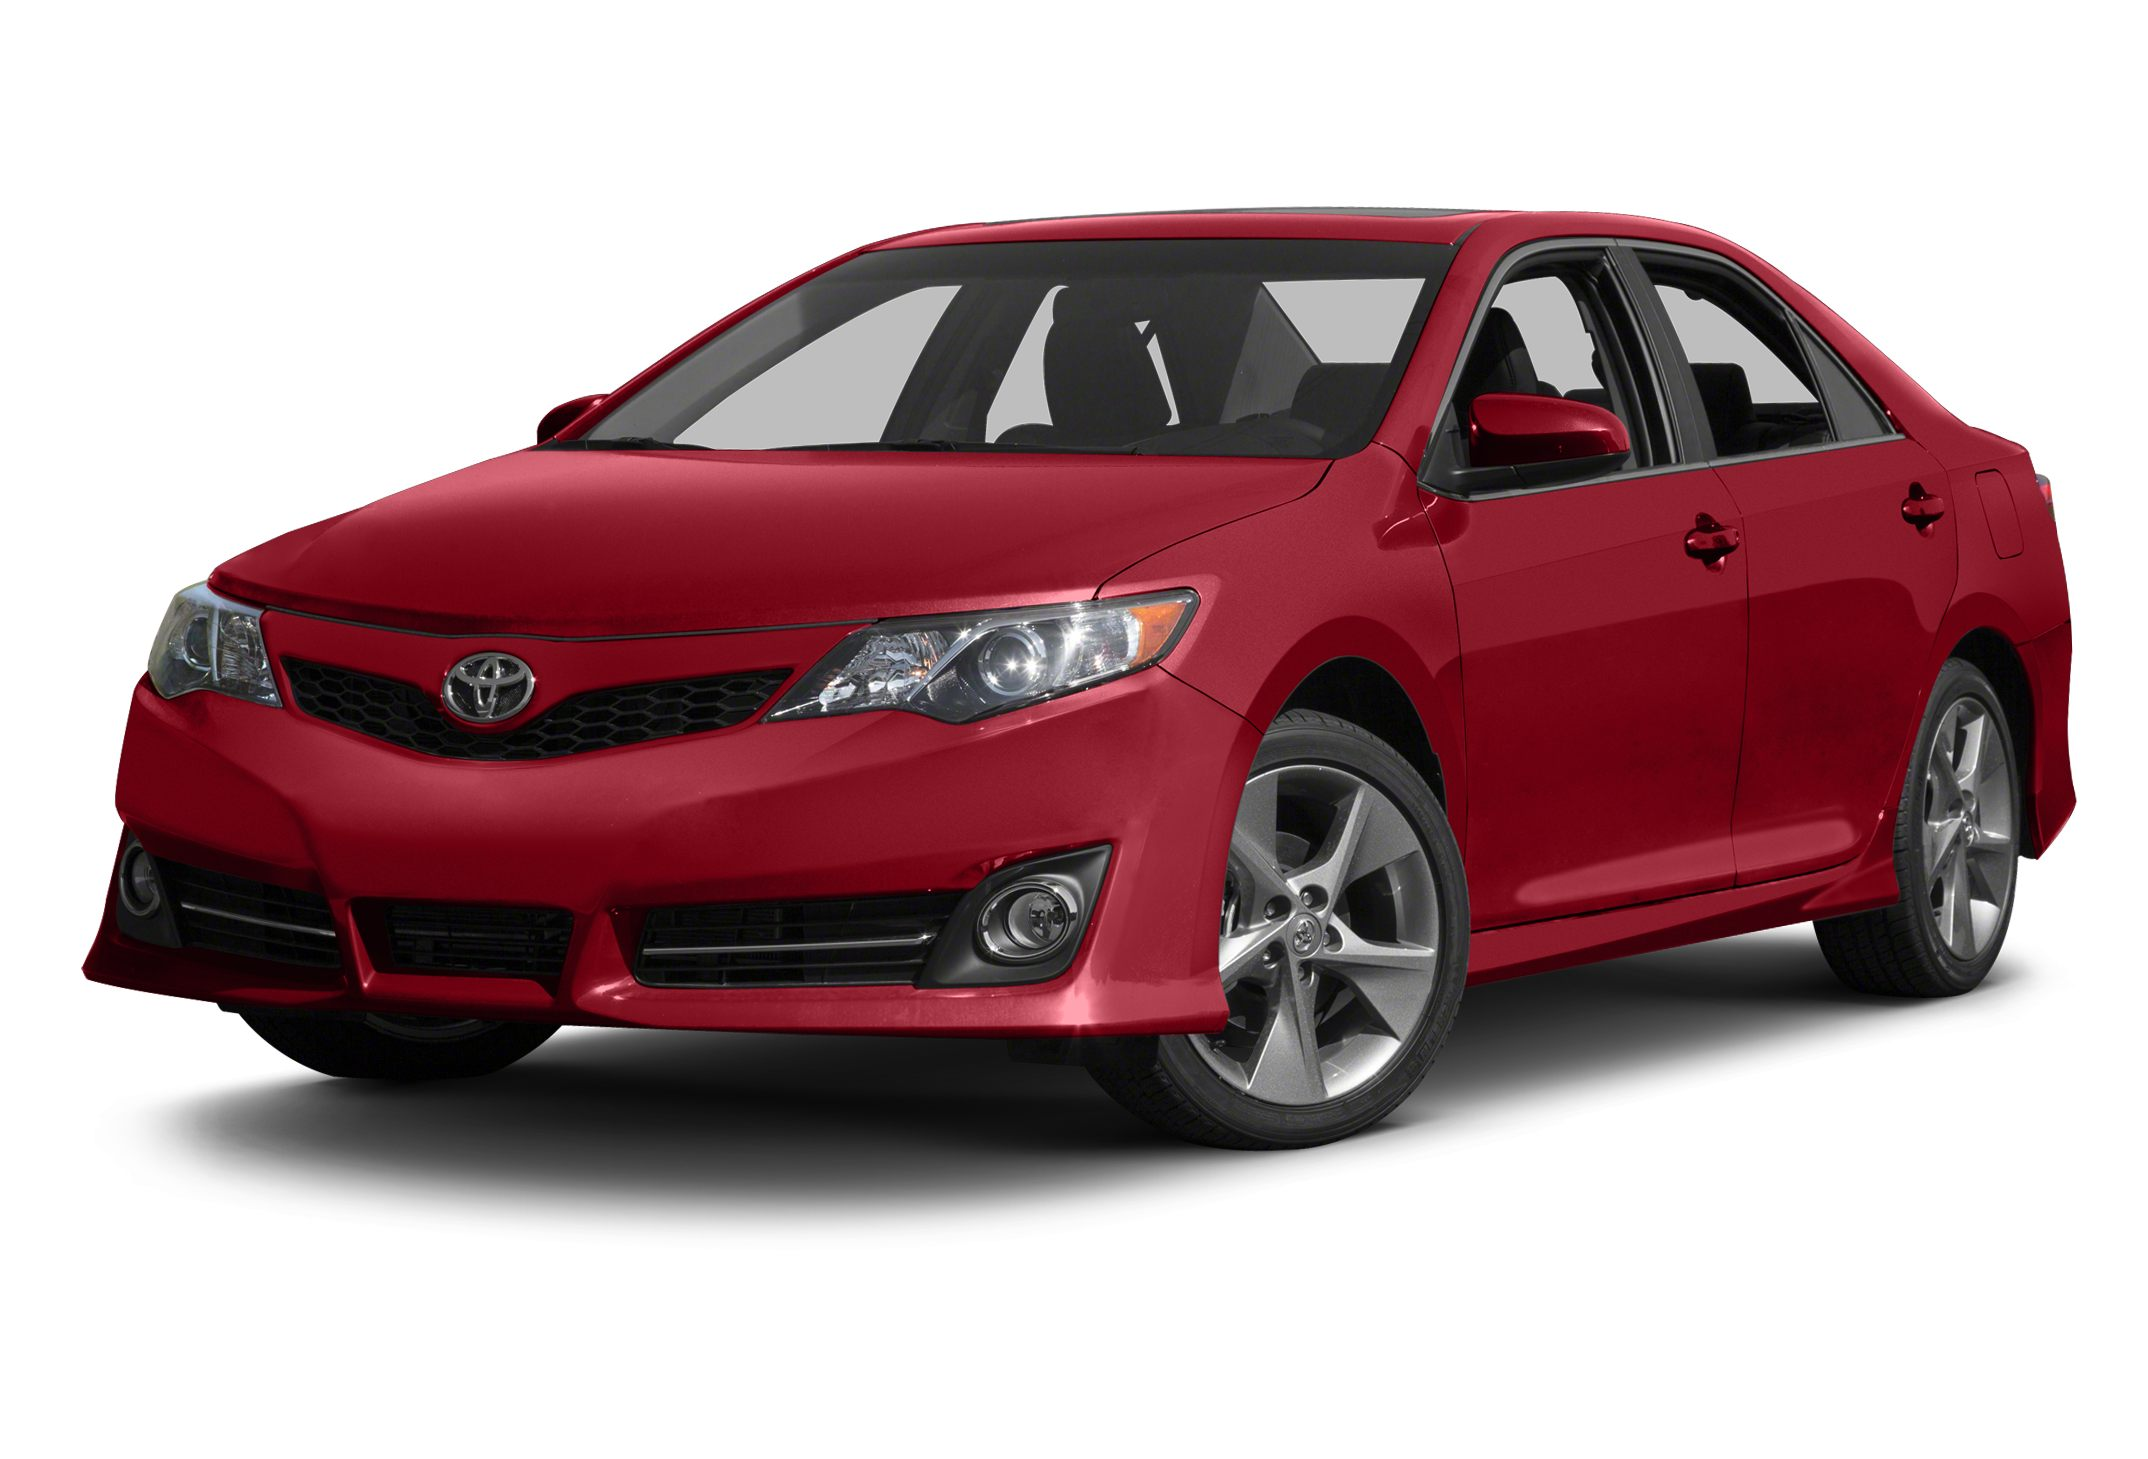 2012 Toyota Camry SE Sedan for sale in Rockville for $19,000 with 11,270 miles.